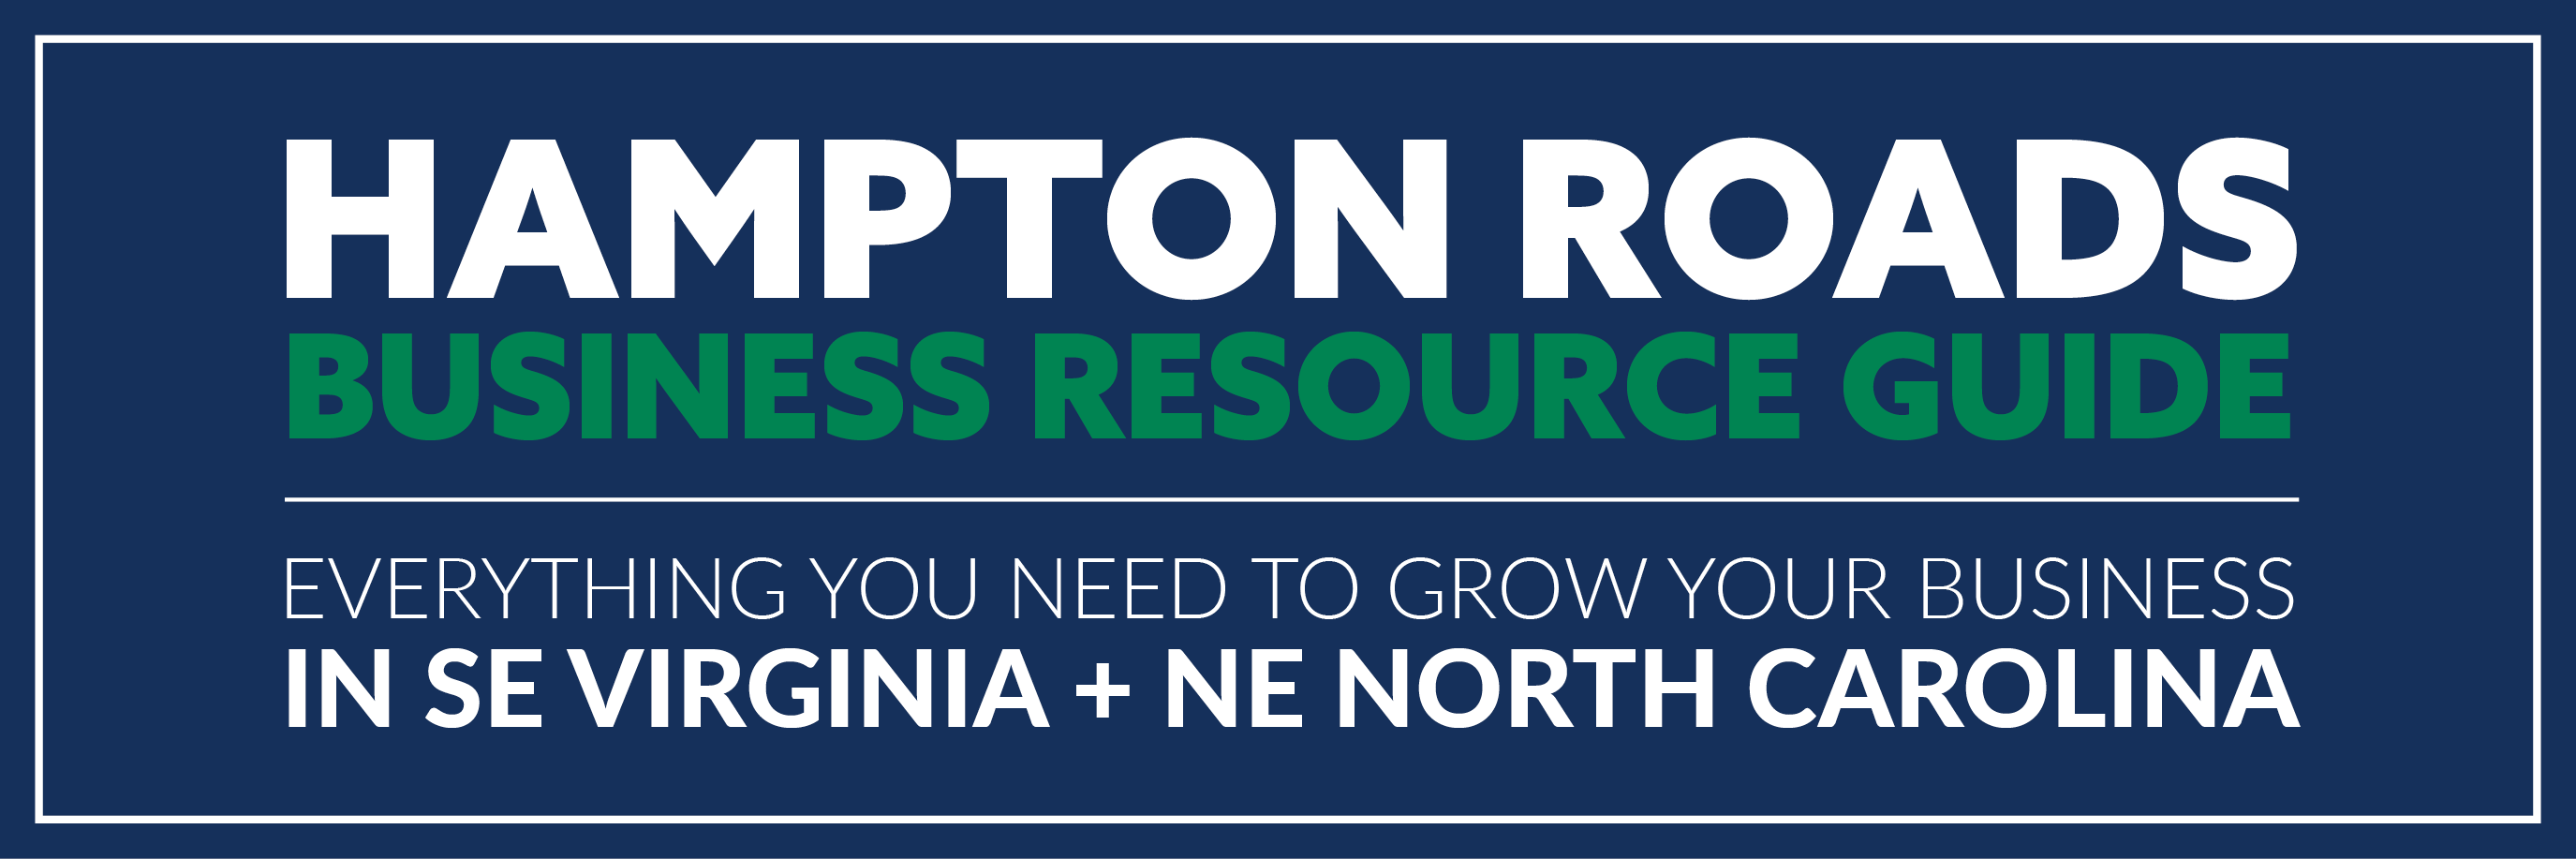 2020 Hampton Roads Business Resource Guide 005